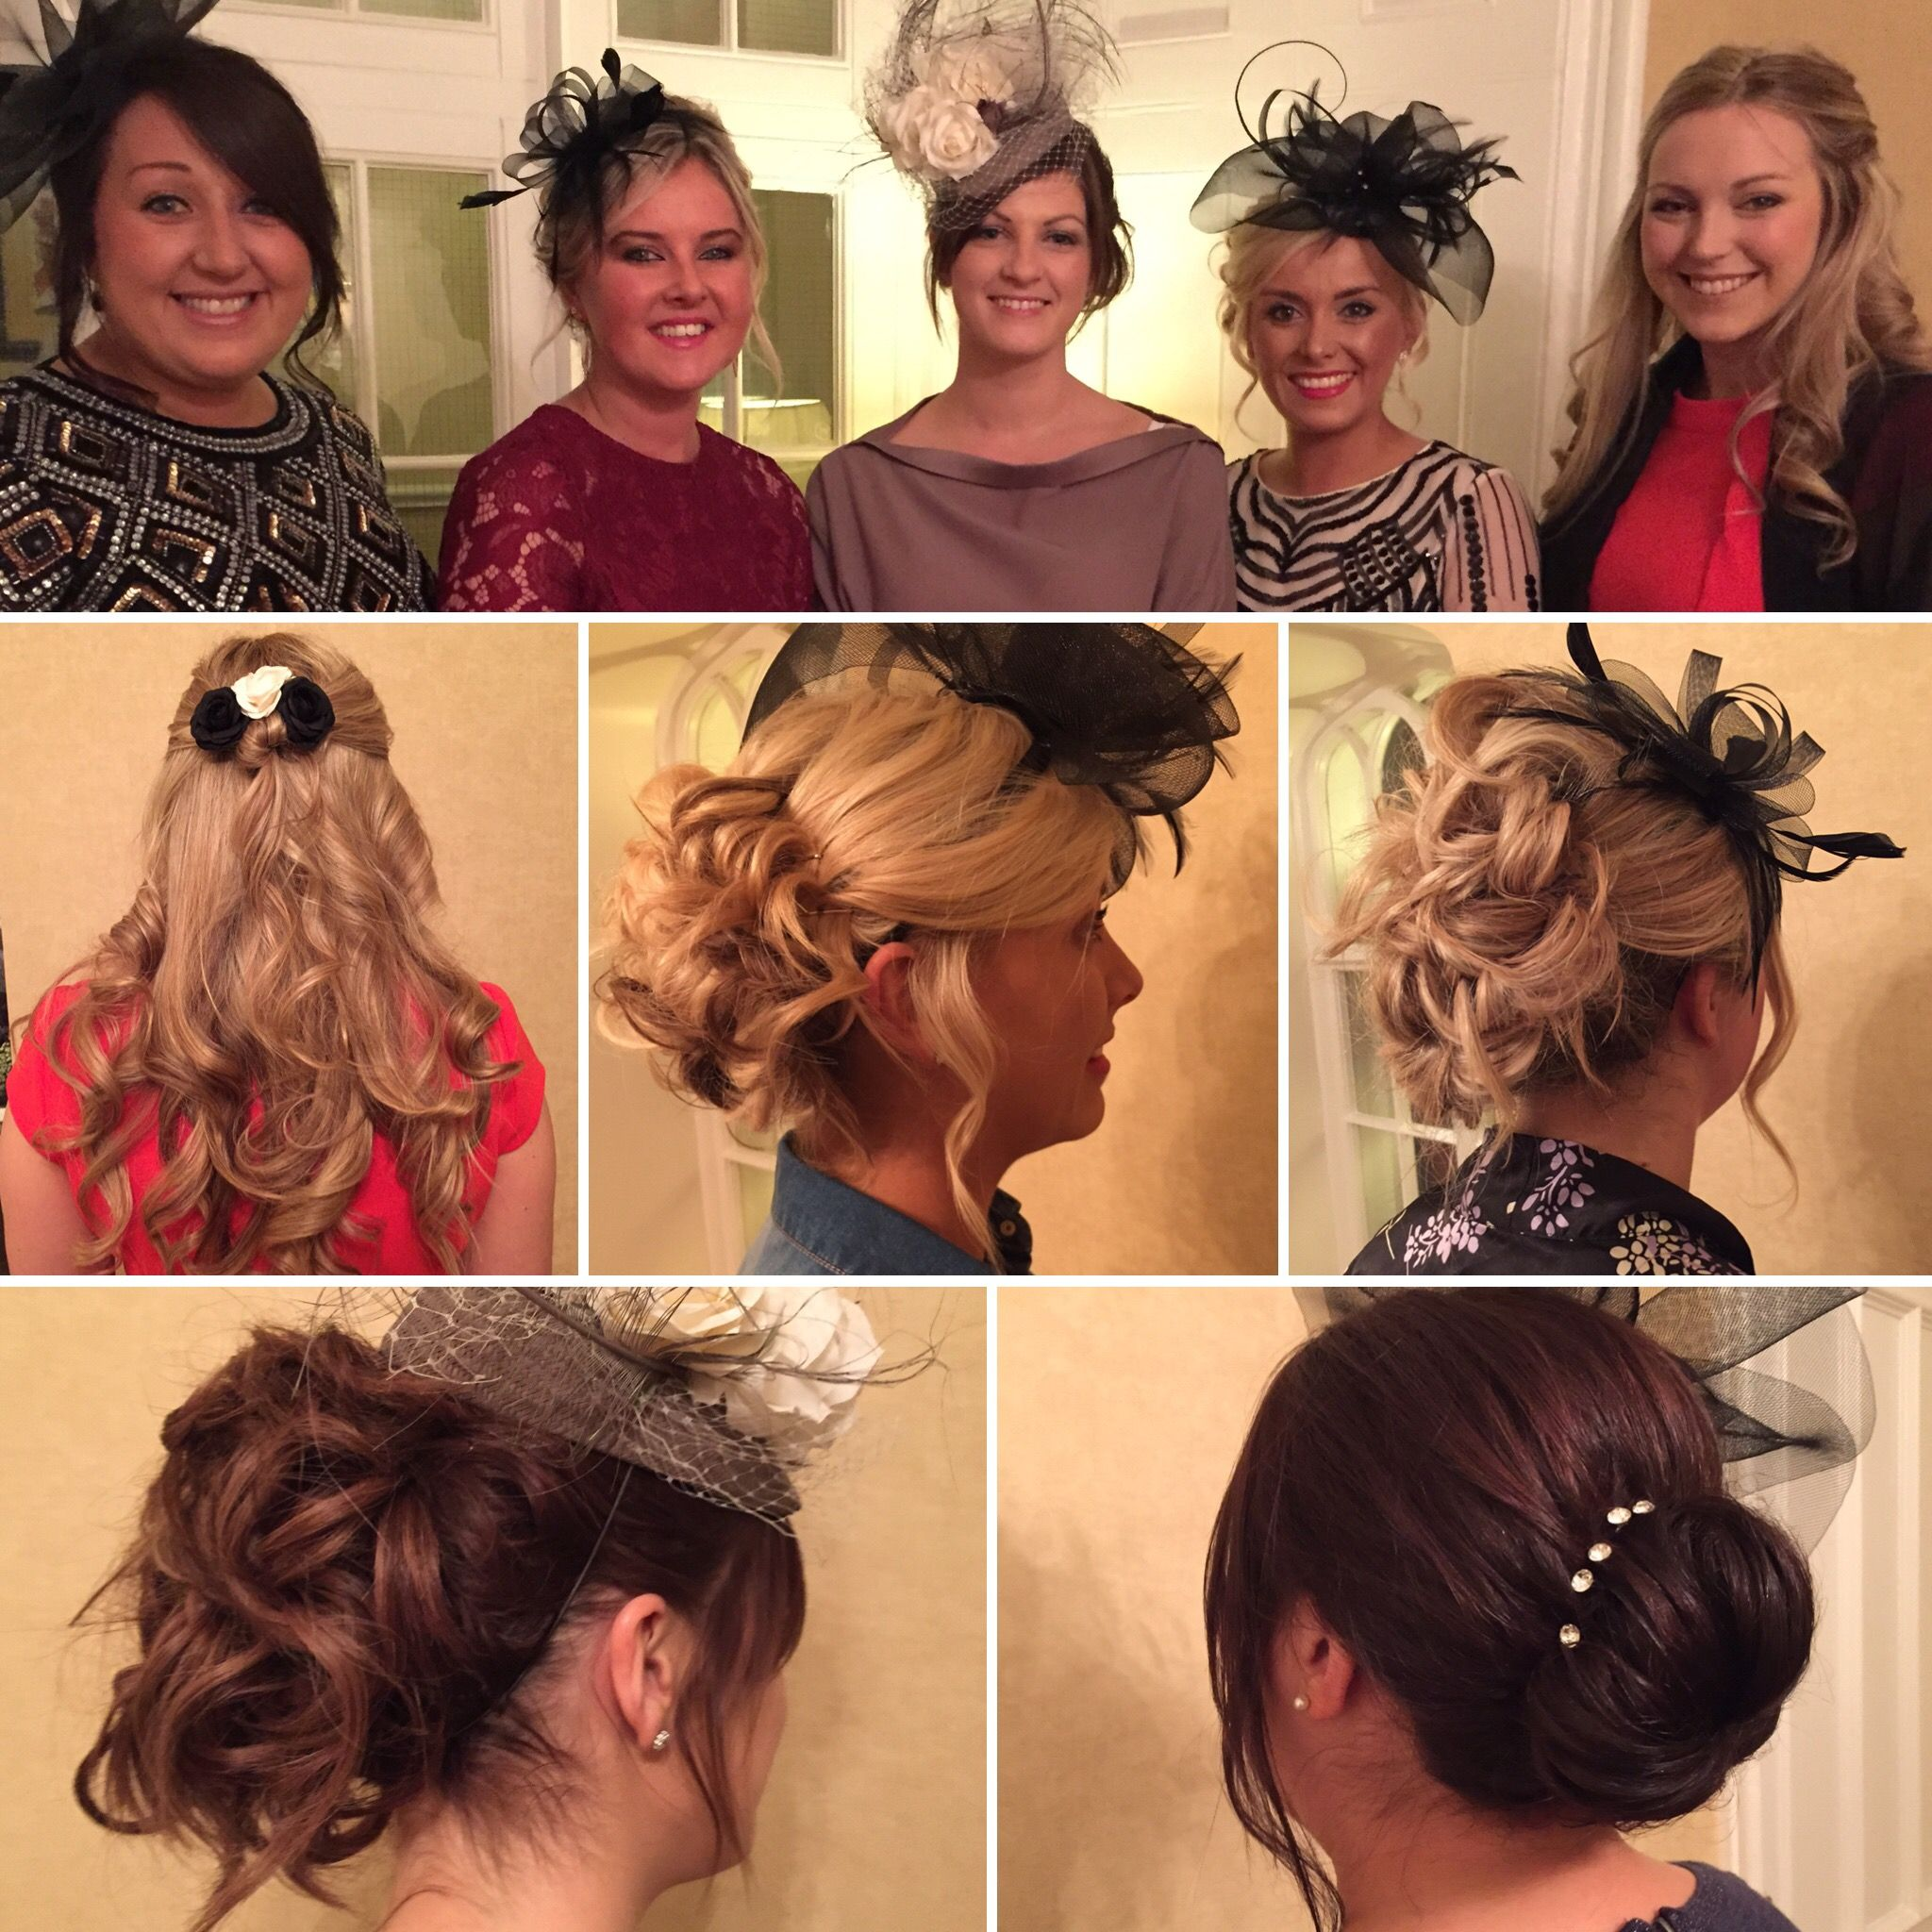 hair by jackie of jax glam beauty hair in various up do's